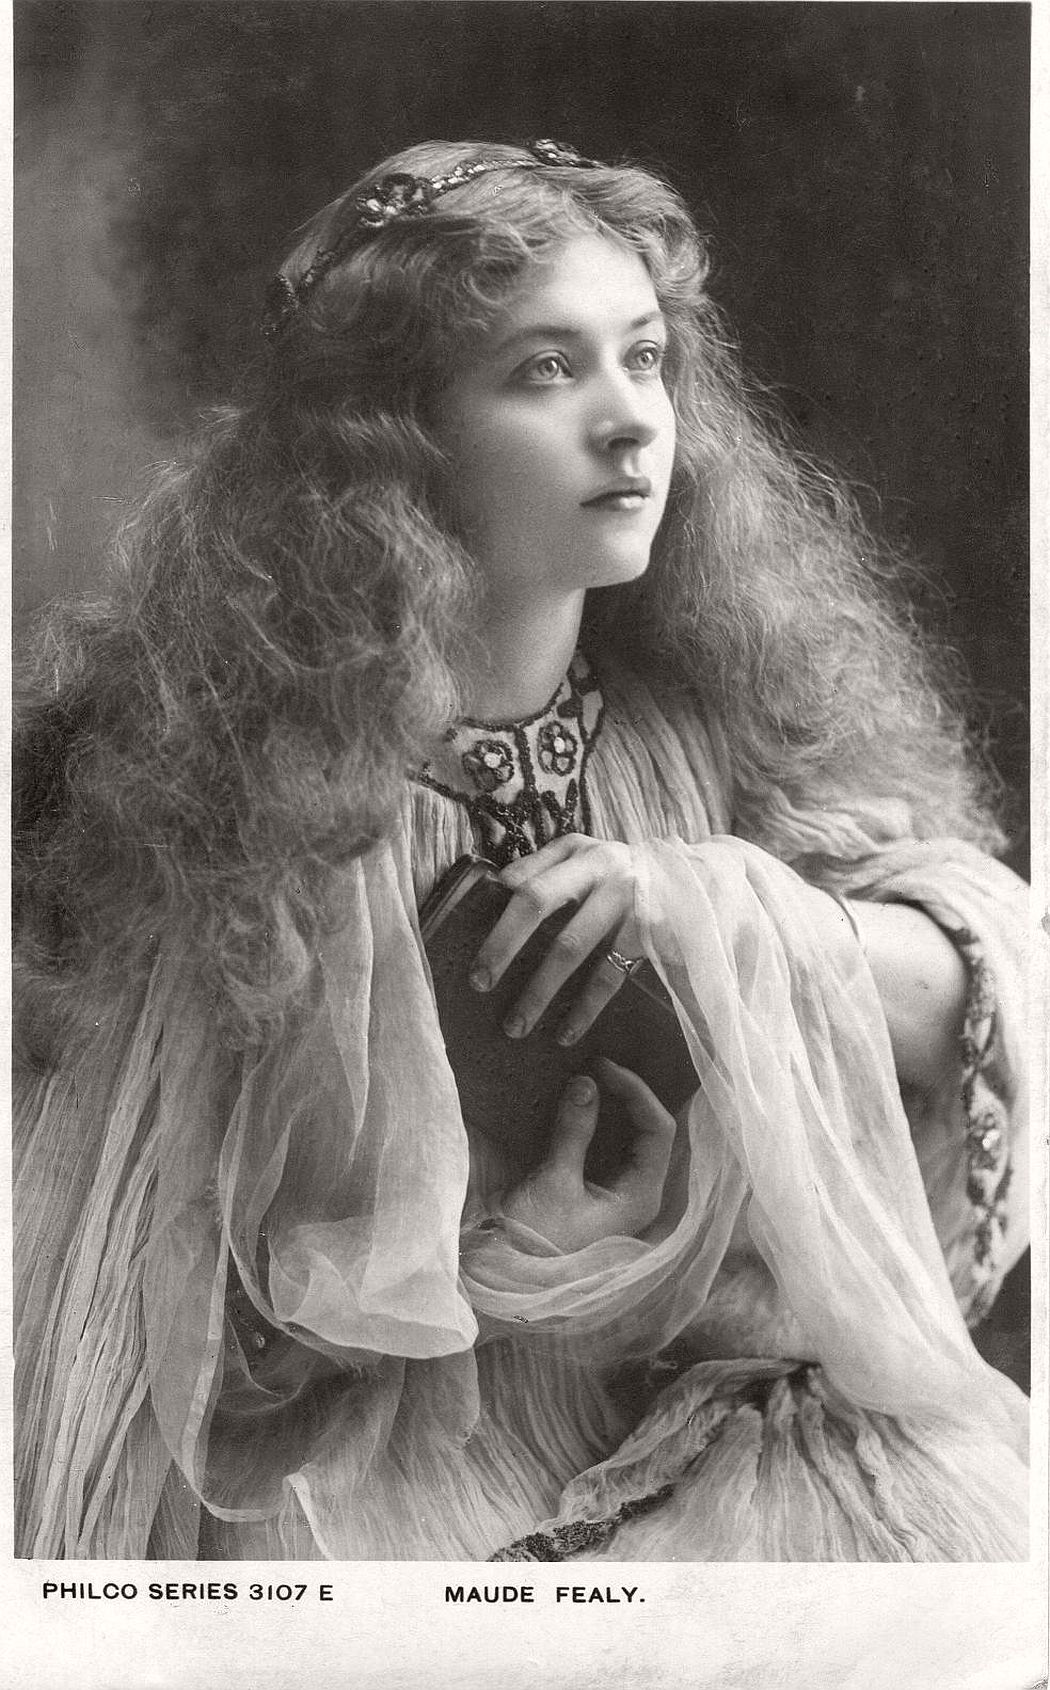 vintage-postcard-of-actress-miss-maude-fealy-1900s-early-xx-century-29